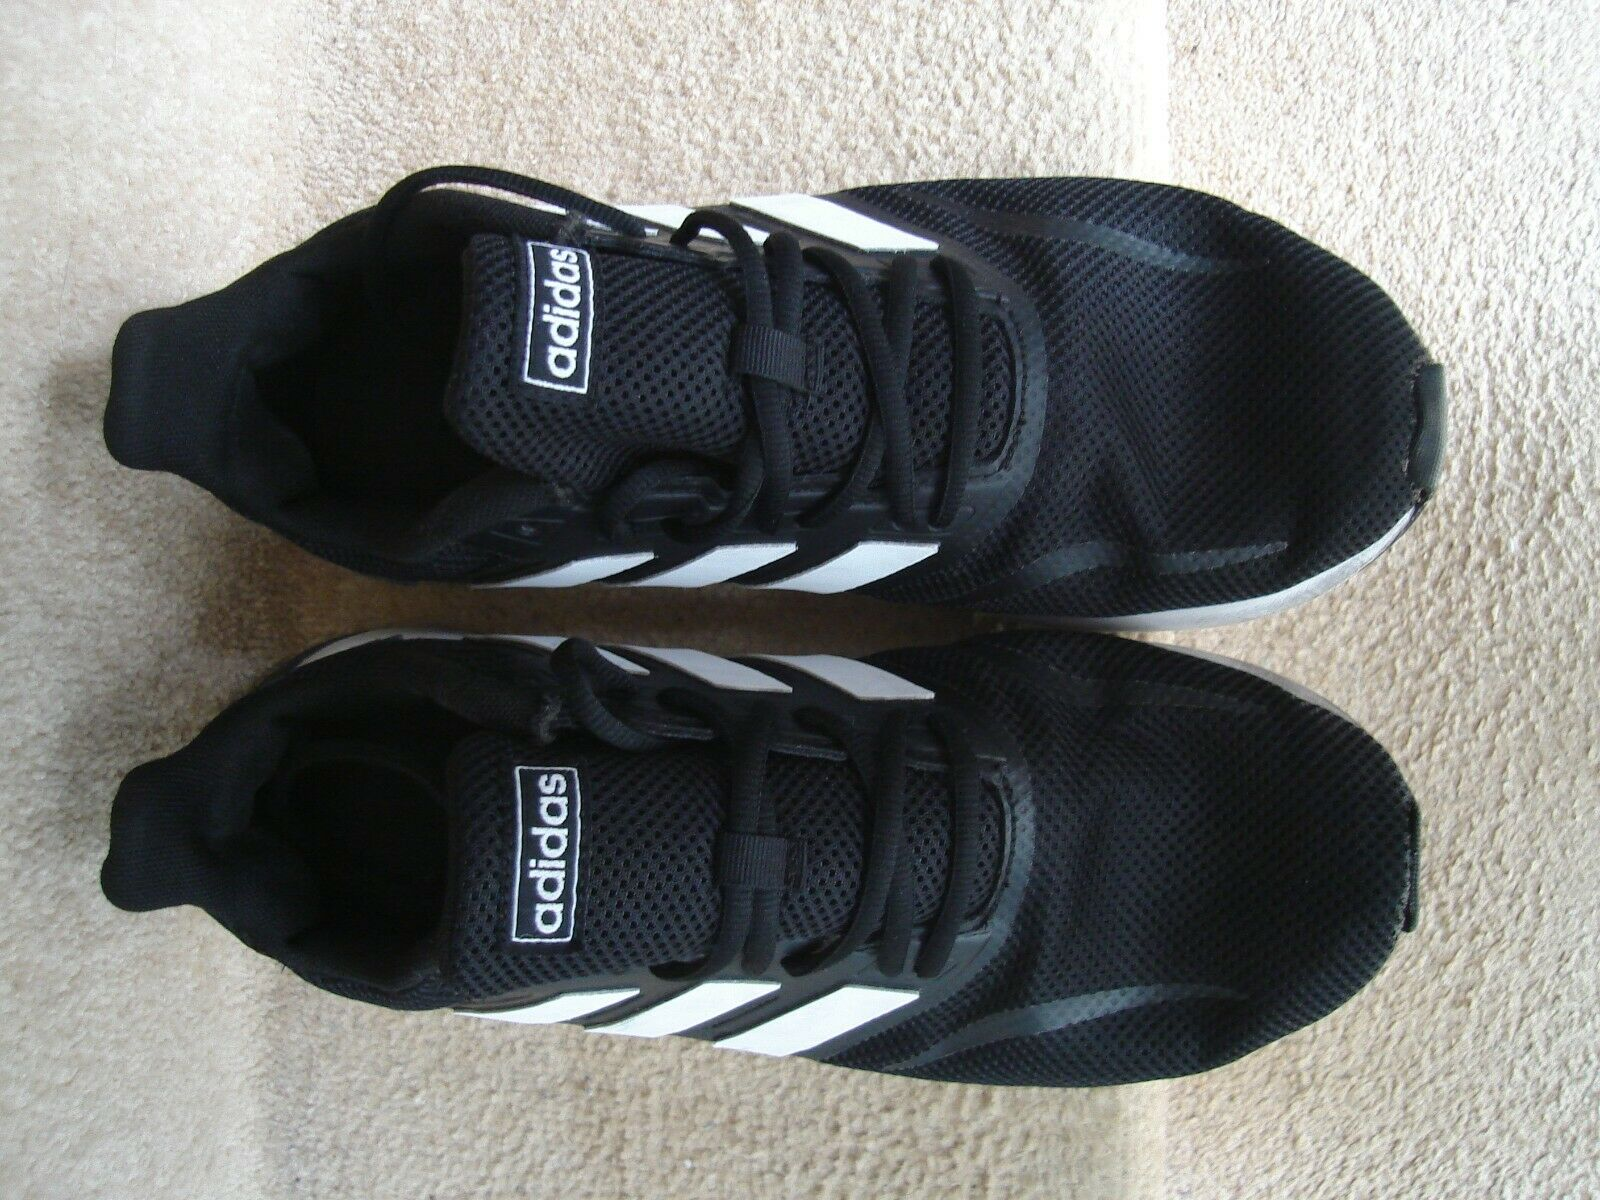 mens adidas galaxy 5 runners size 9.5 #124841111 black and white